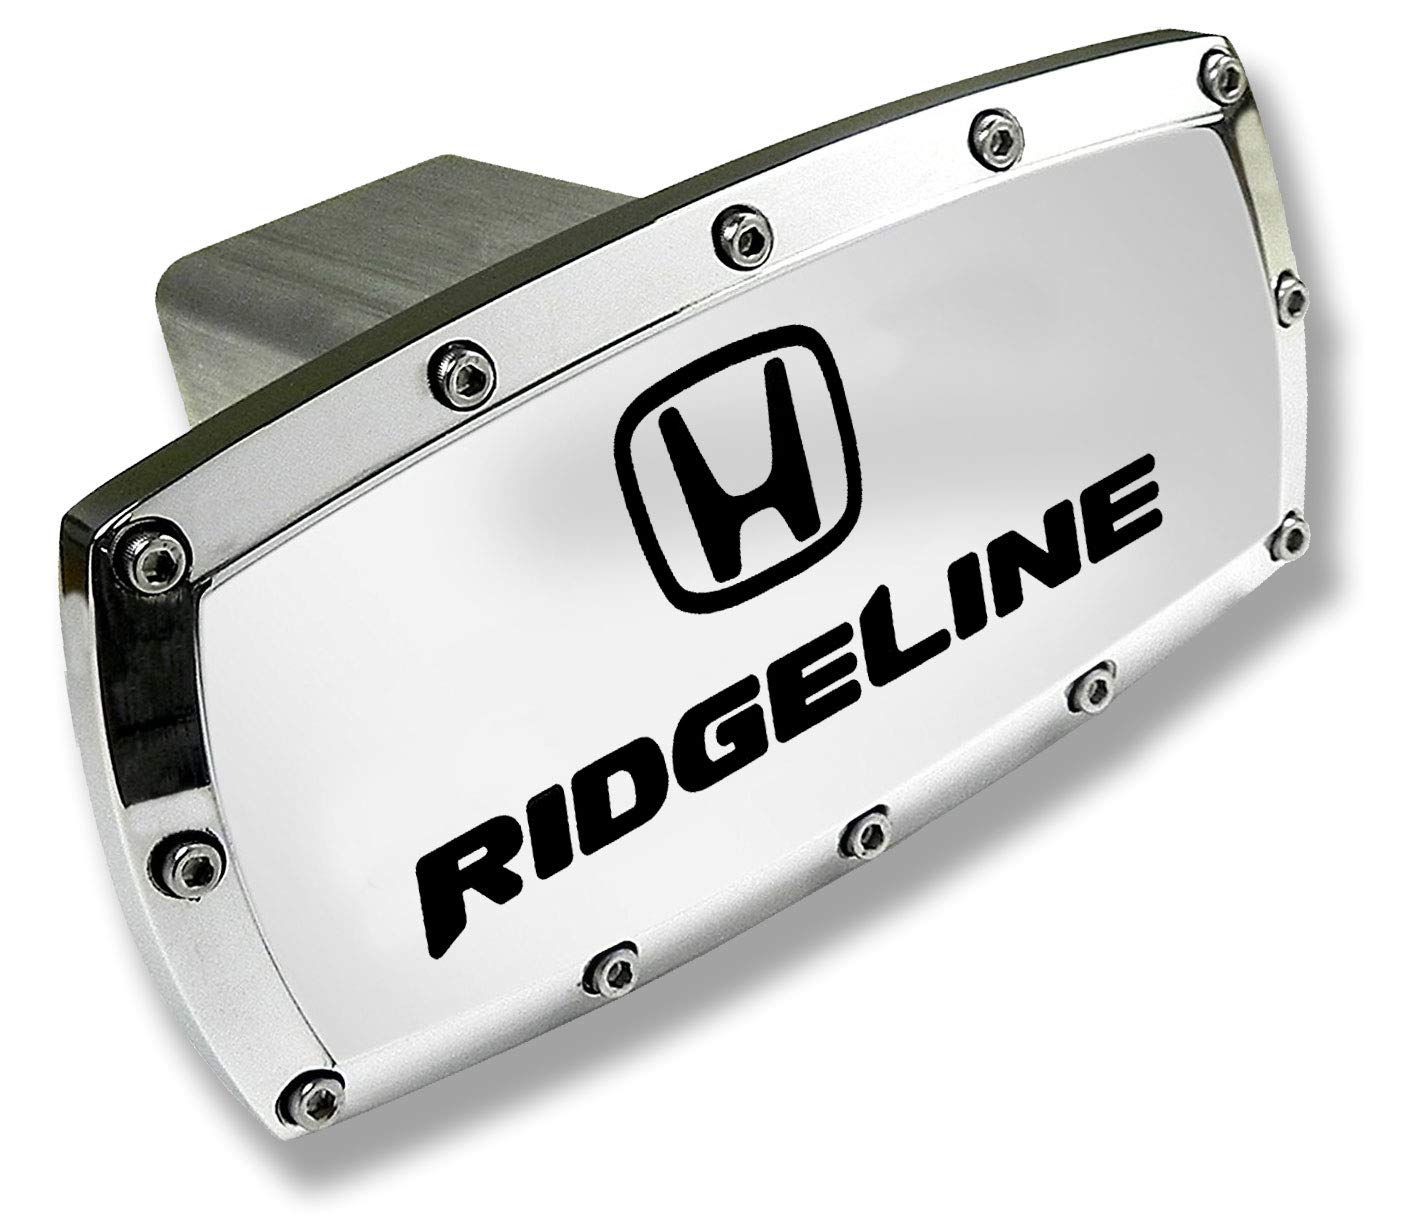 1 Hitch Cover 1 Driving Style Decal Gregs Automotive Ridgeline Hitch Cover Plug Cap Receiver Bundle Decal 2 Items MADE IN USA